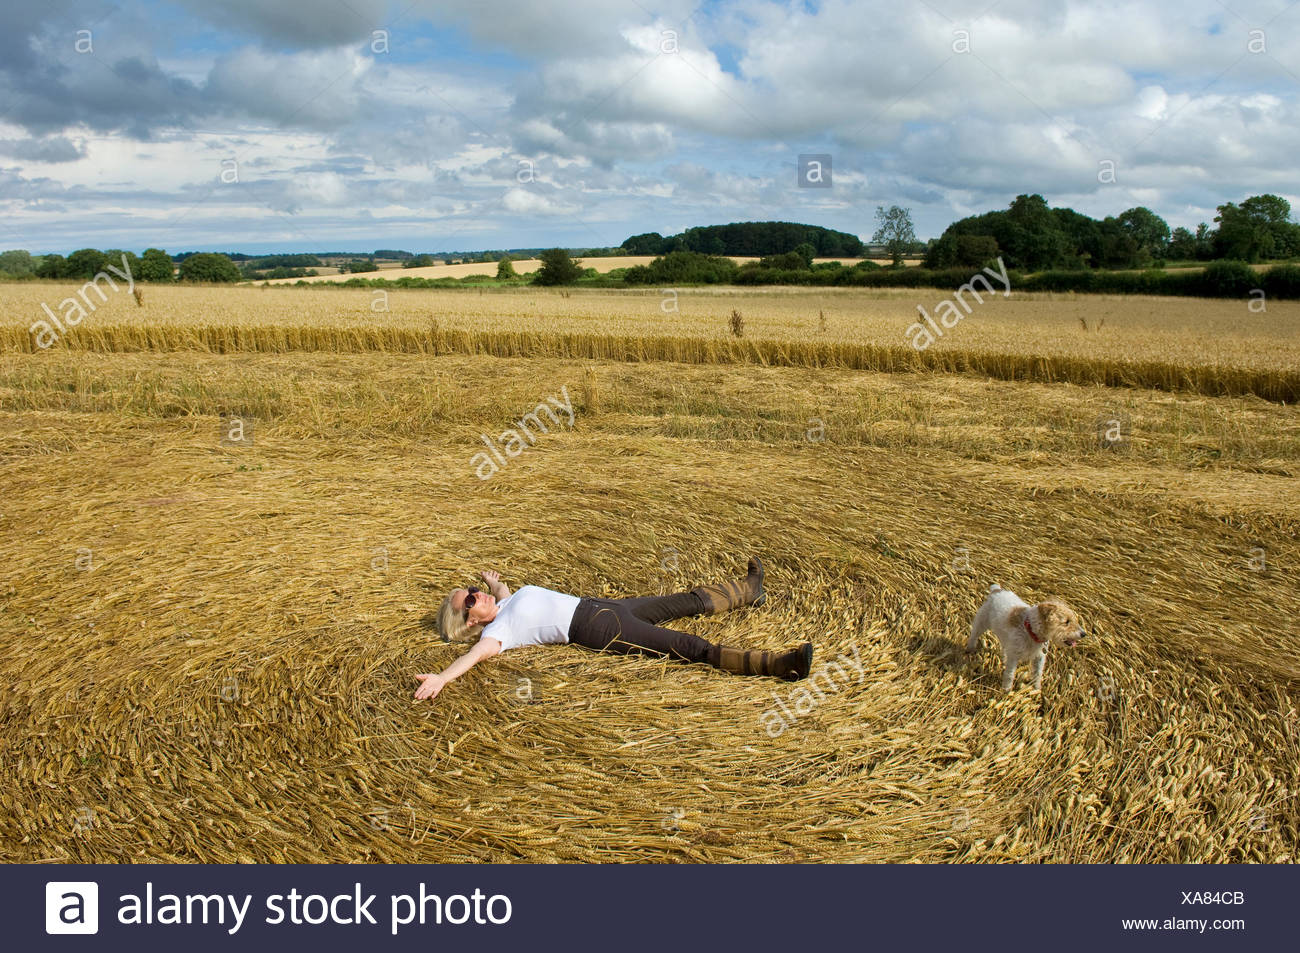 A farmer lying down on his back in the stubble of a freshly cut crop field creating a pattern in the straw. - Stock Image